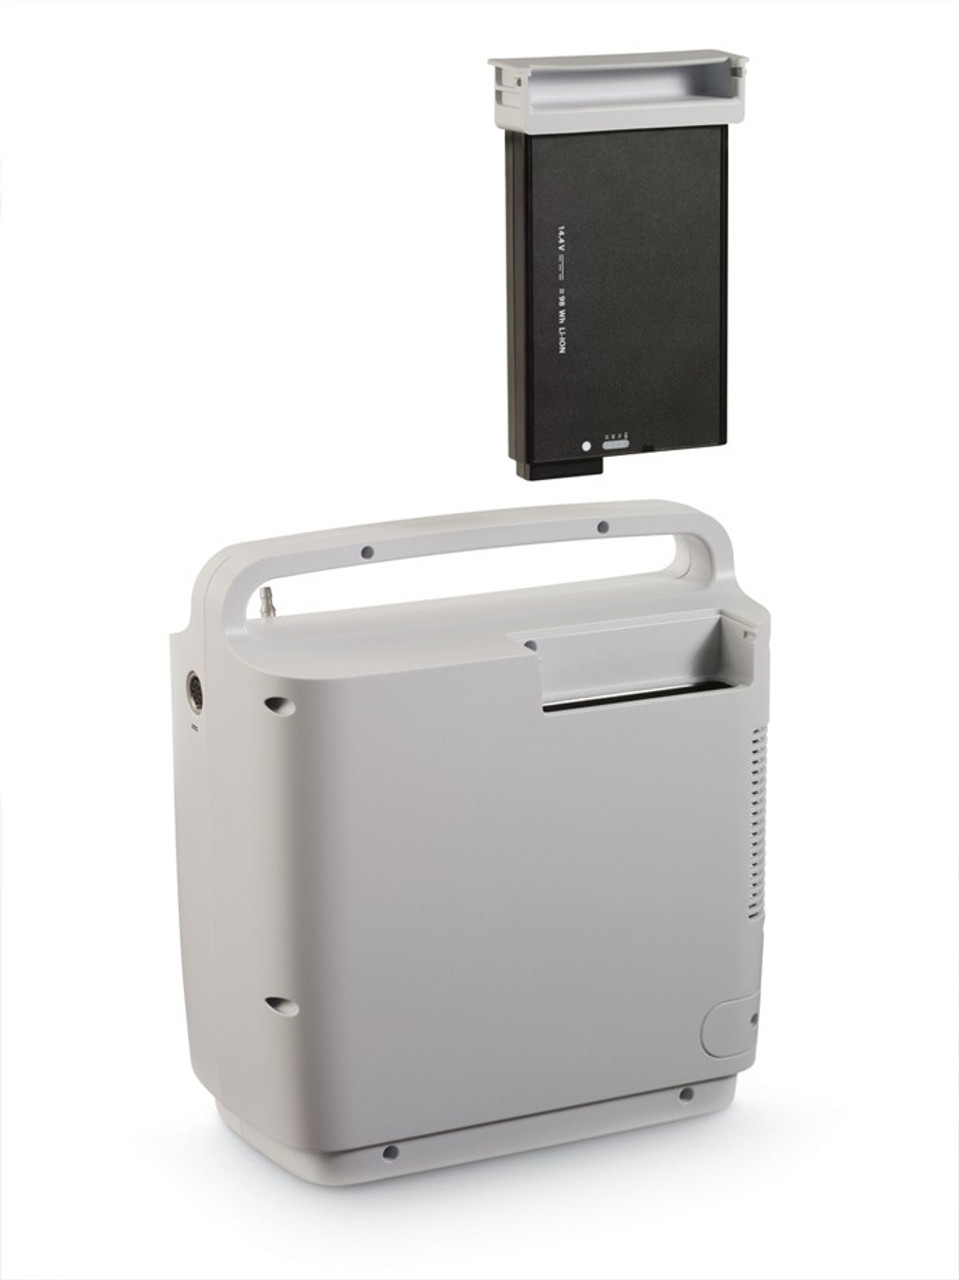 SimplyGo Portable Oxygen Concentrator Battery Cartridge Insertion